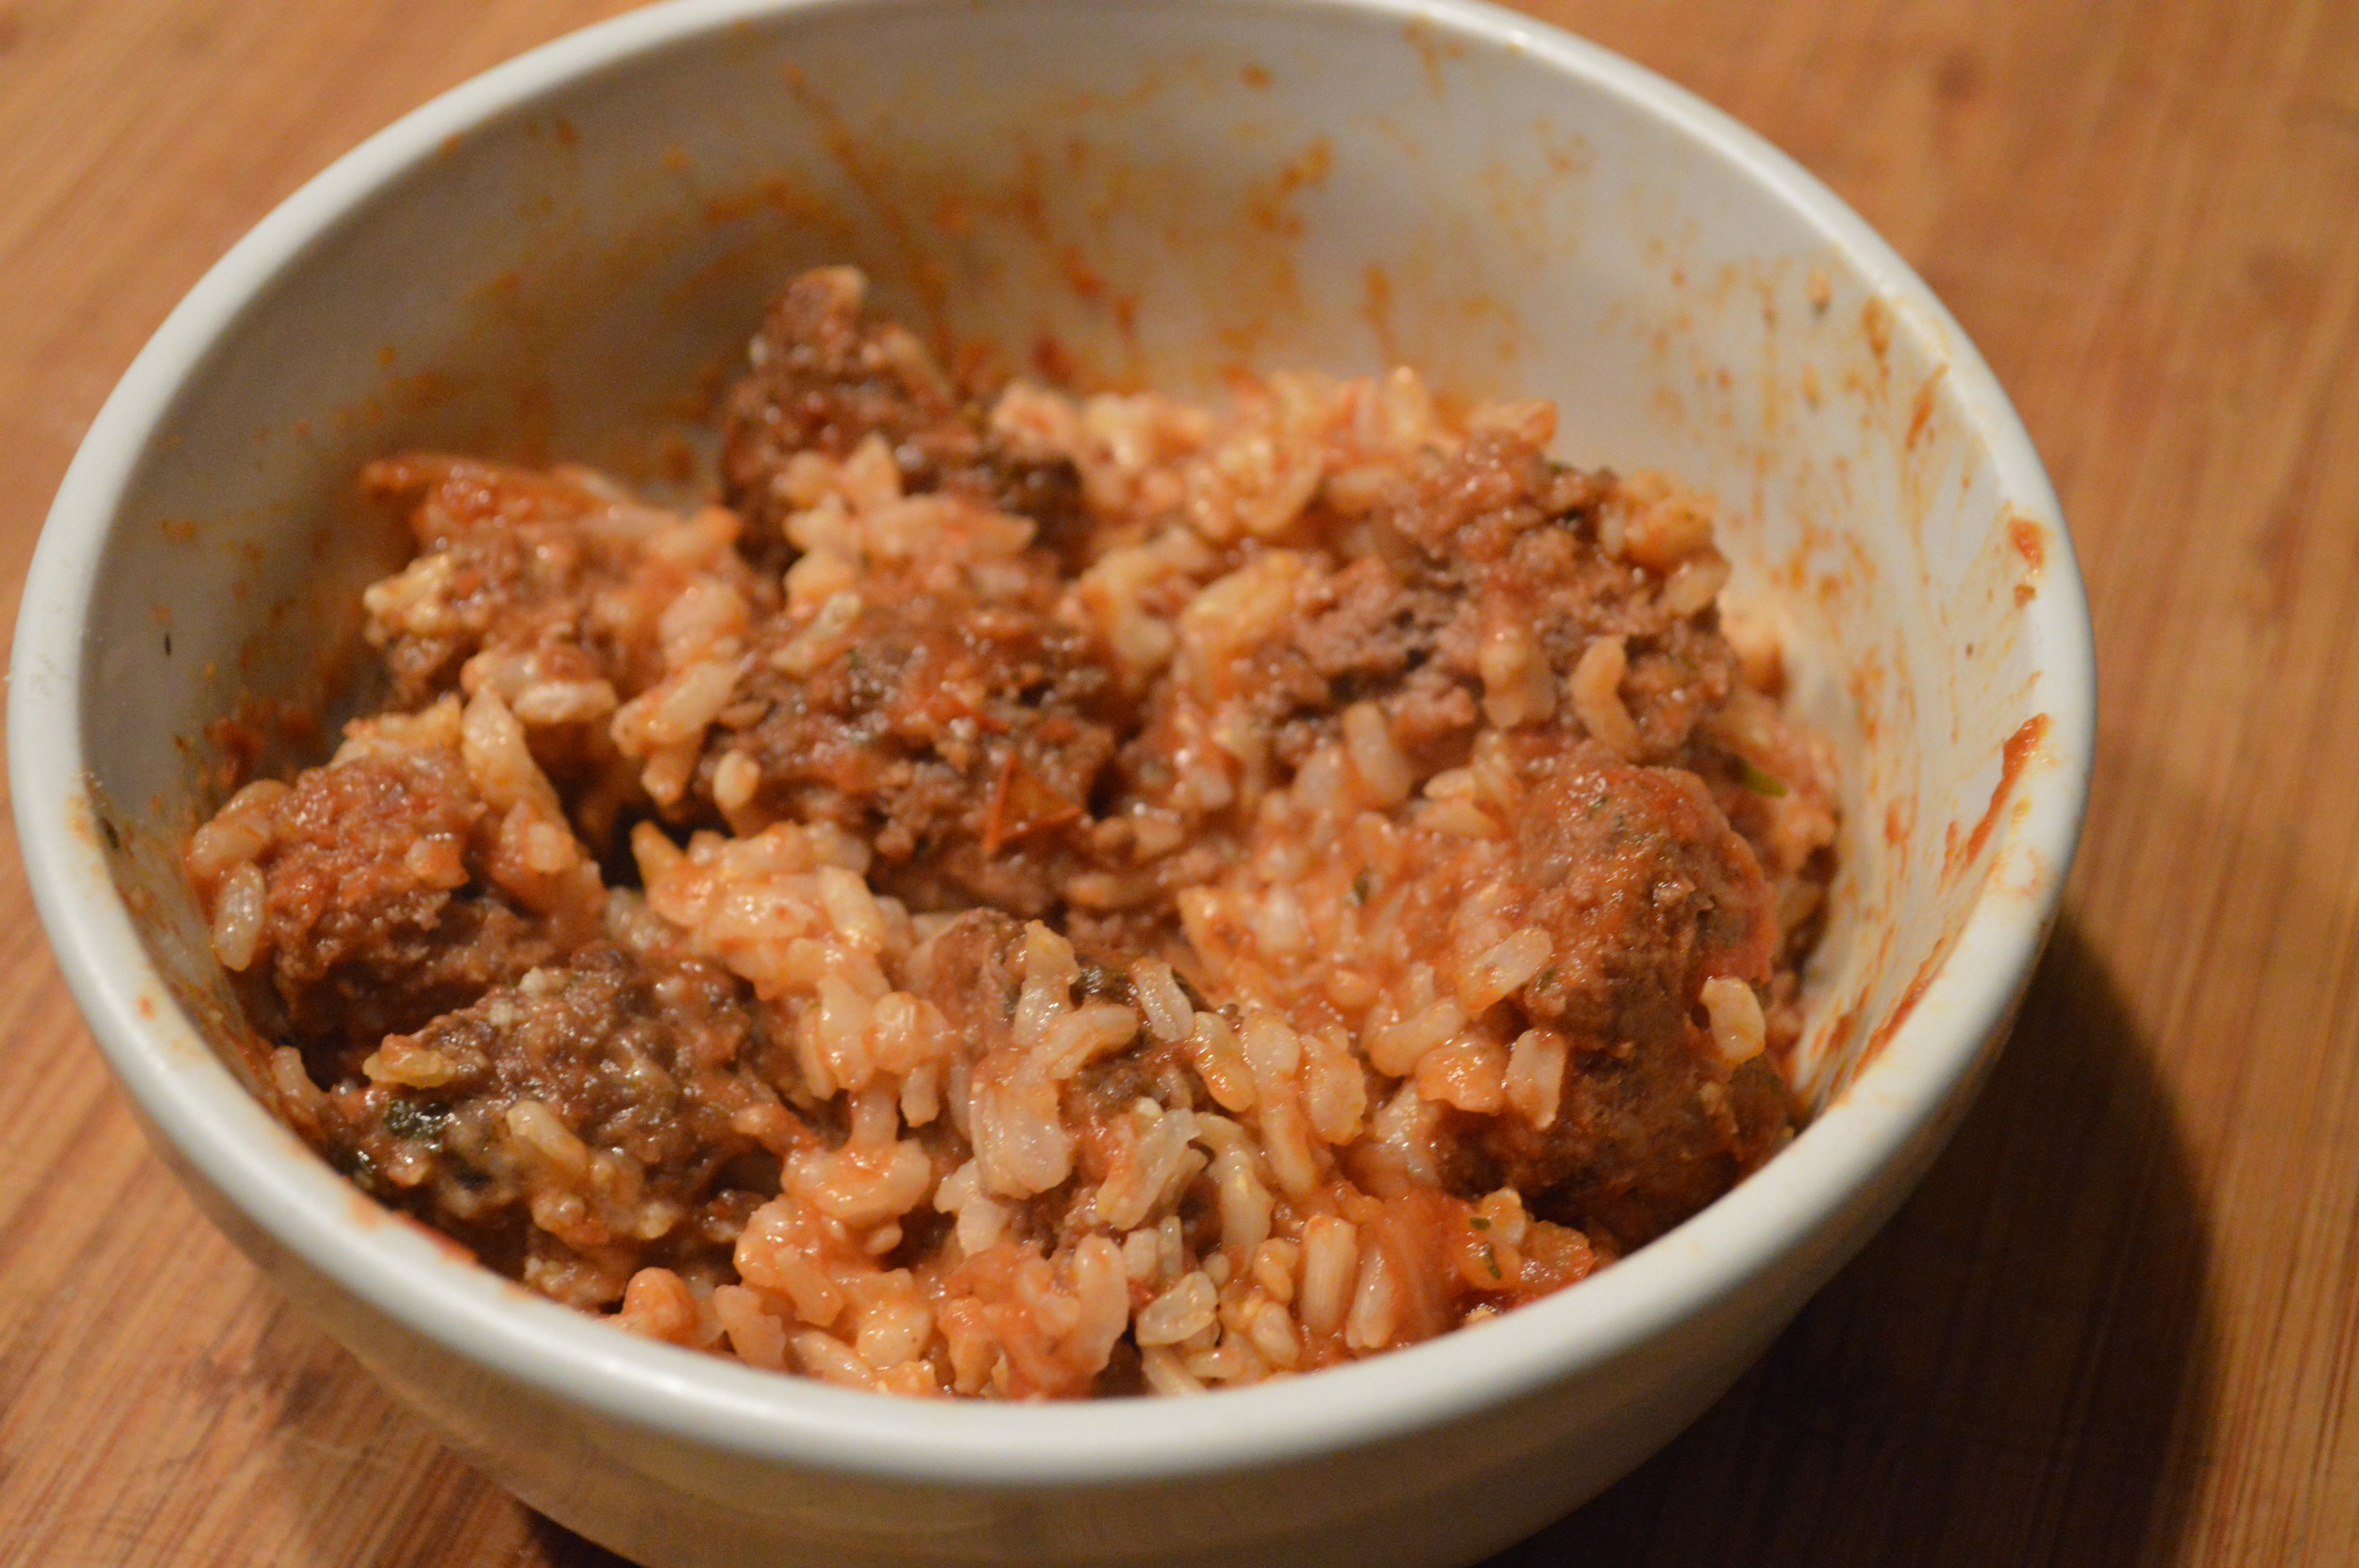 Meatballs Leftovers